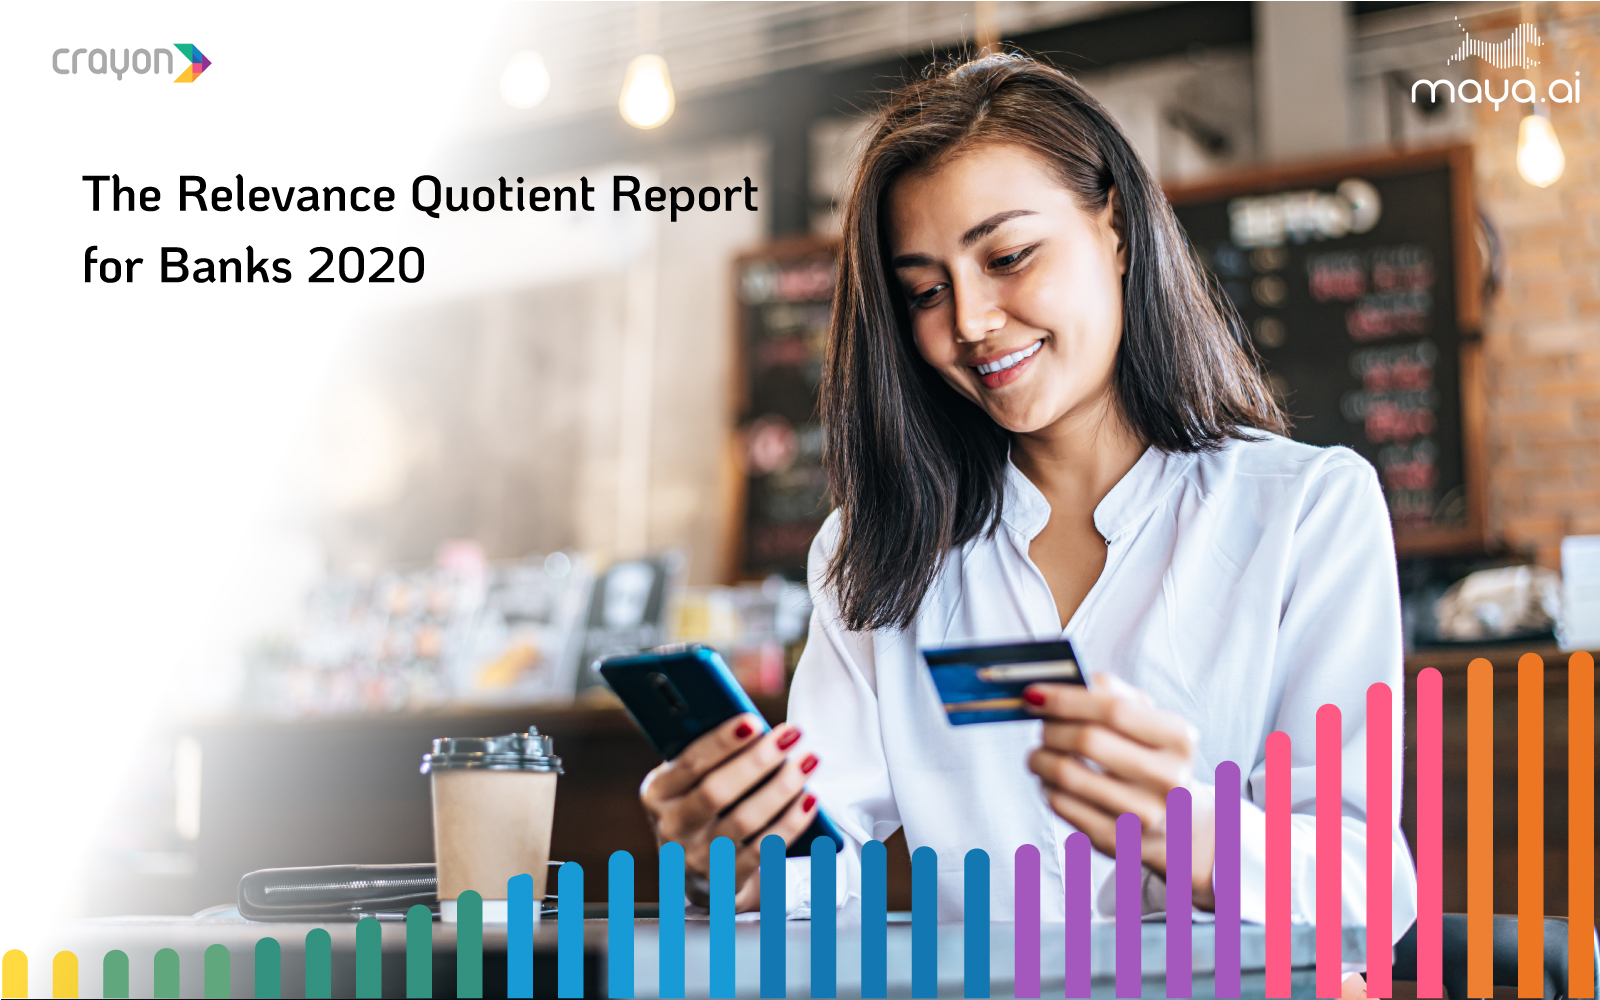 The Relevance Quotient Report 2020 for banks: the COVID-19 edition